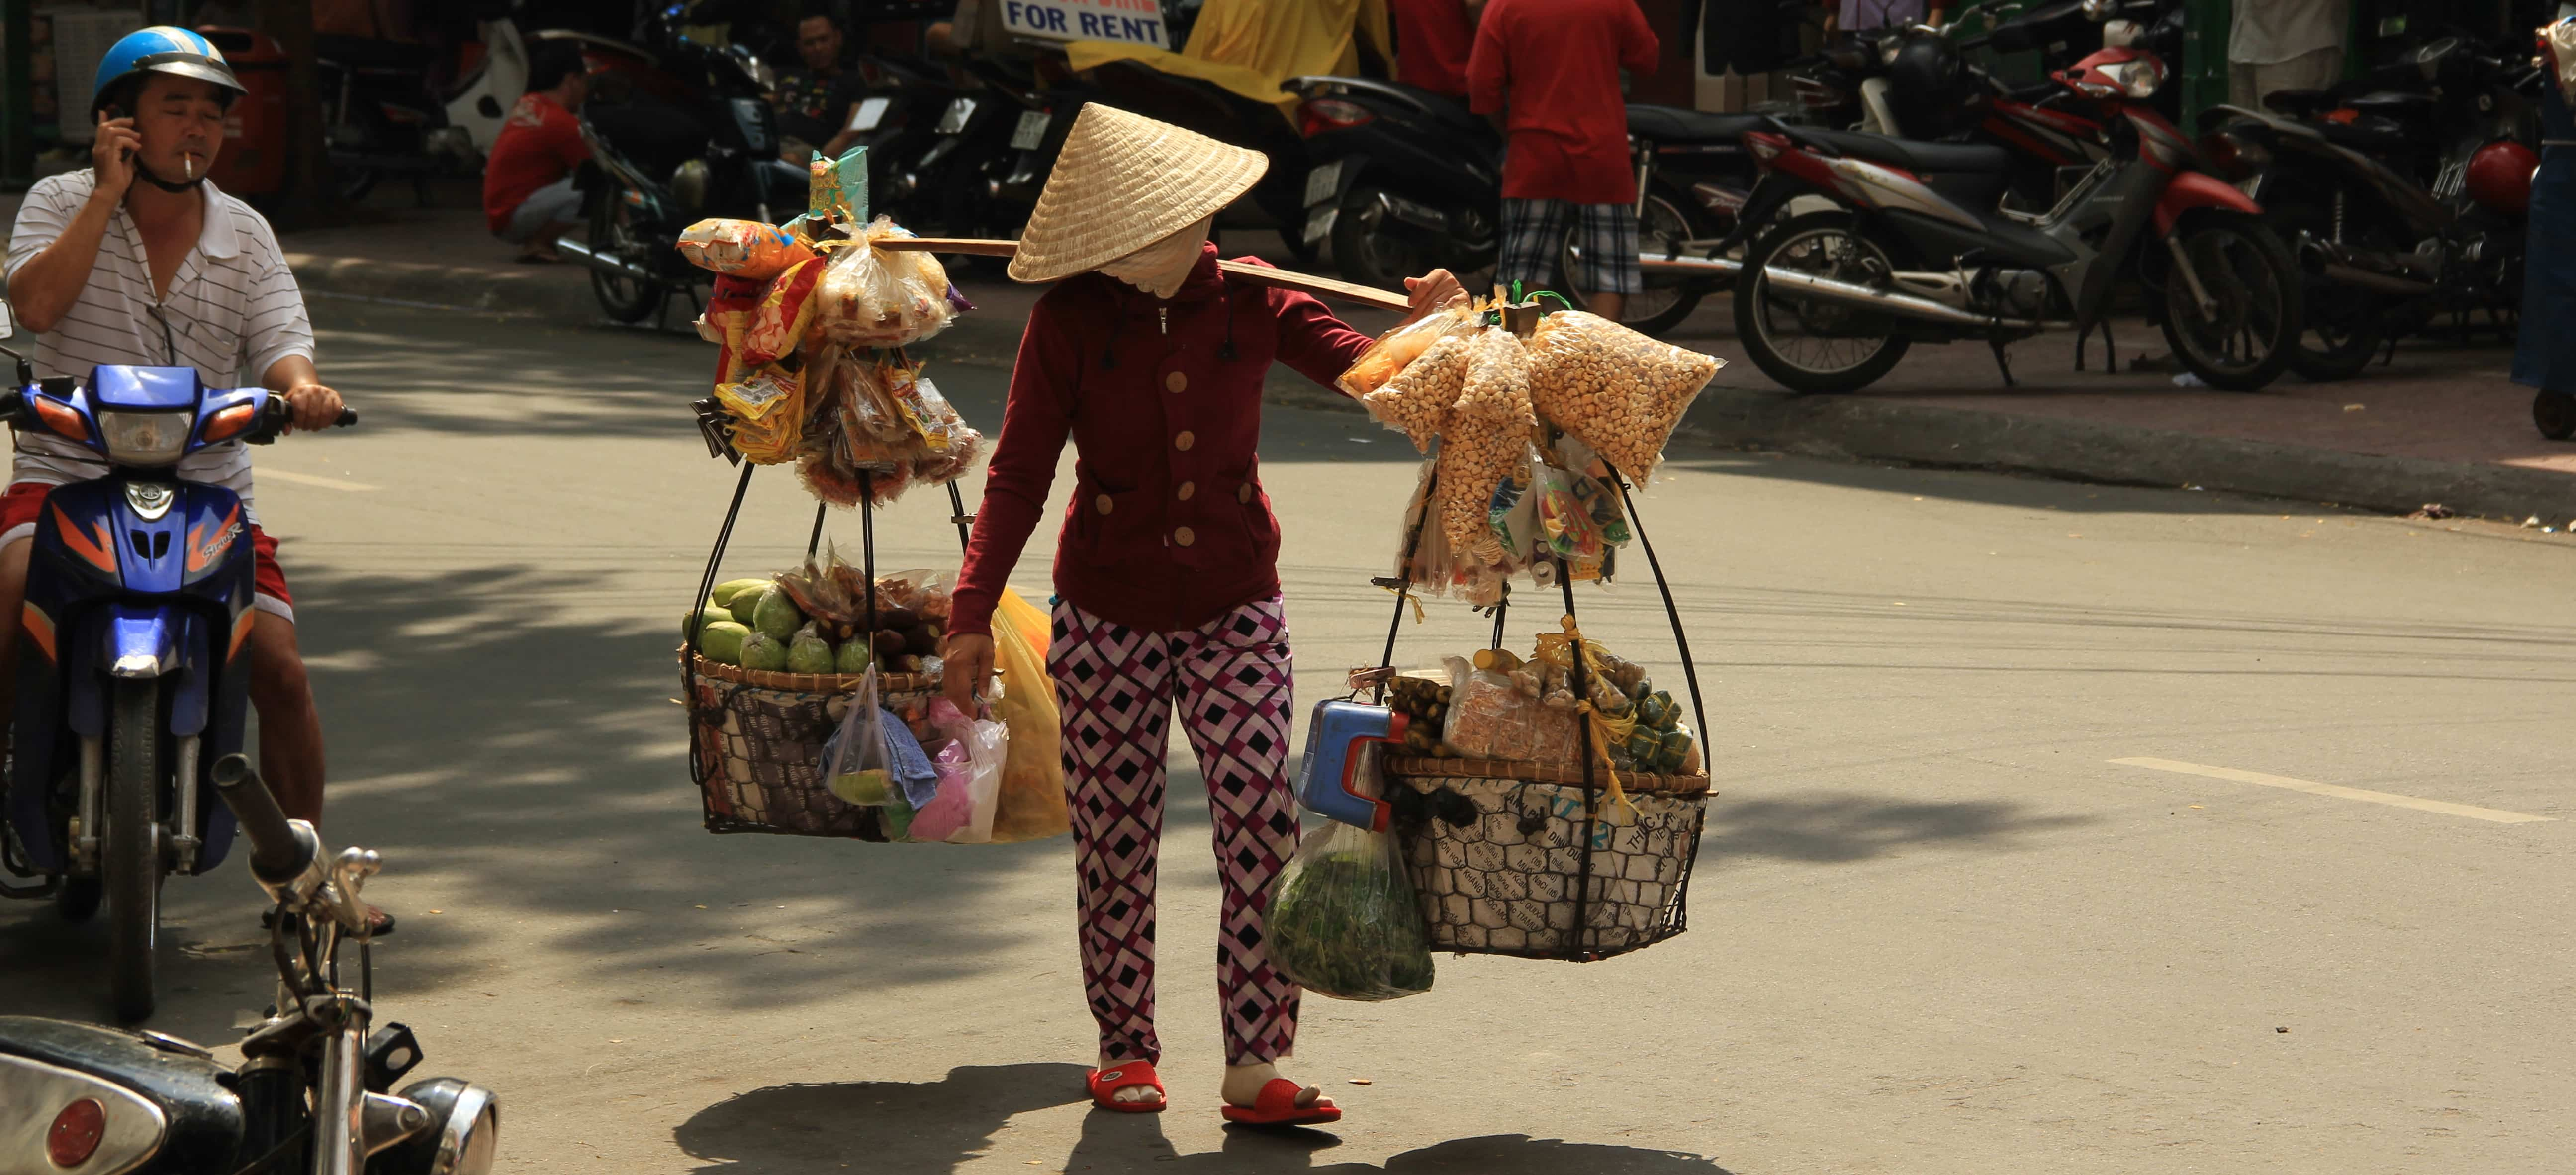 Trip in Asia - Ho Chi Minh City